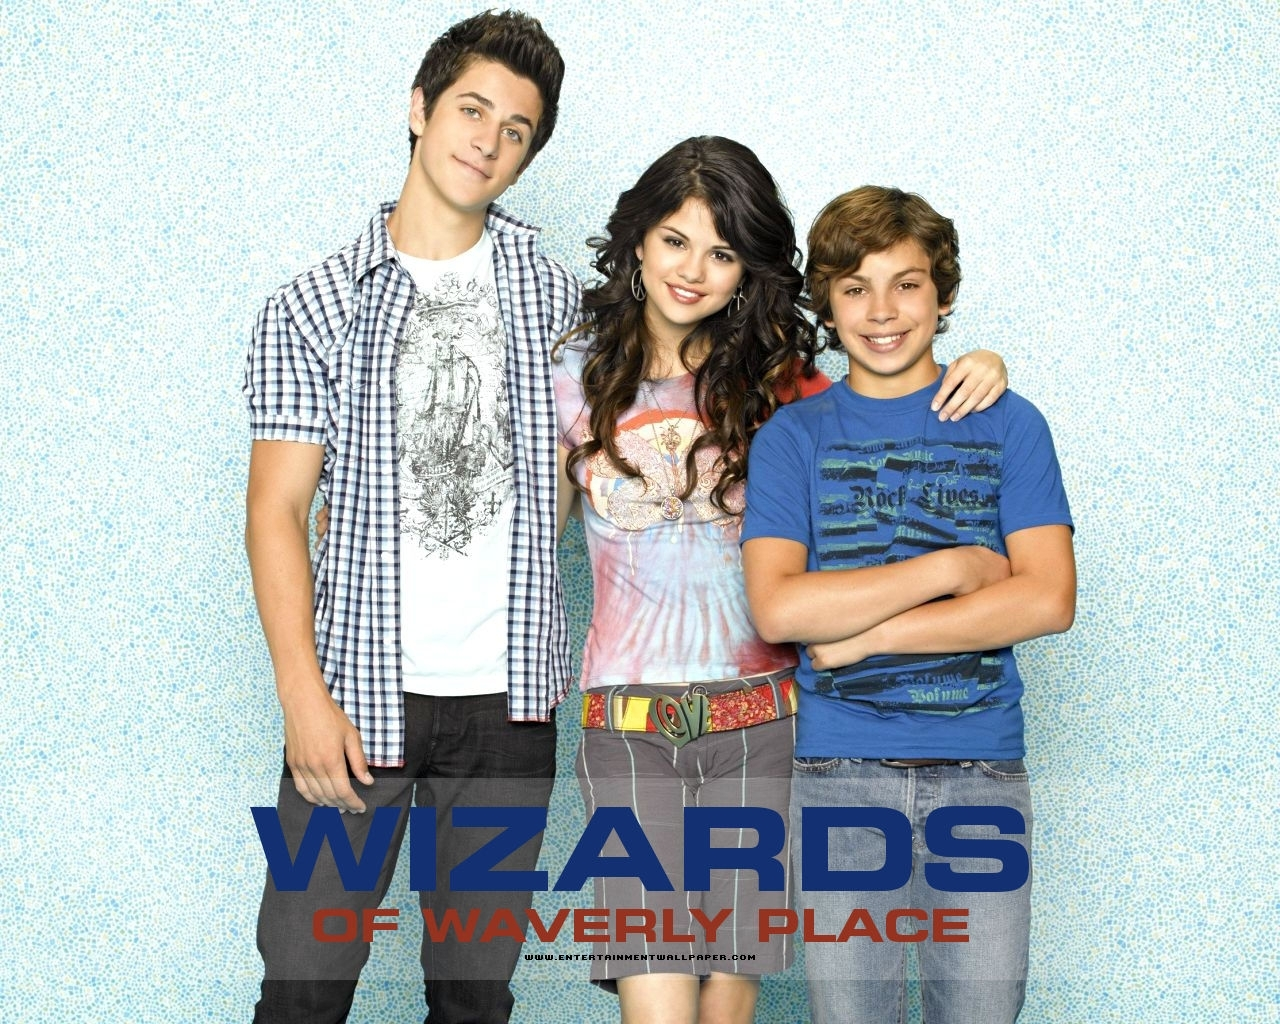 Which Wizards From Waverly Place Character Are You?